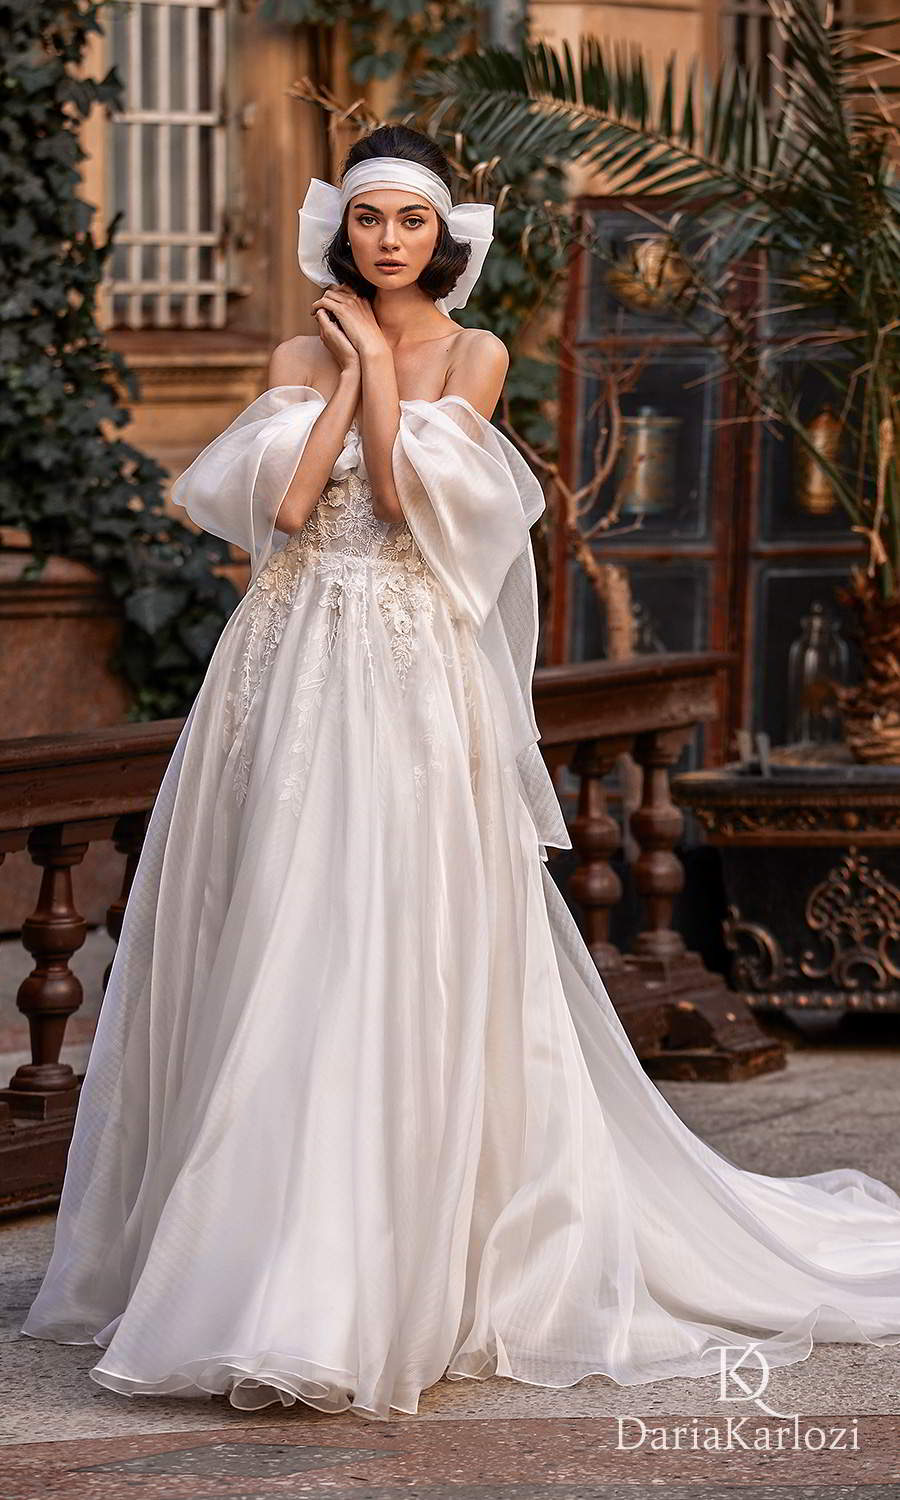 daria karlozi 2021 graceful dream bridal off shoulder drape sleeves sweetheart neckline embellished bodice a line ball gown wedding dress chapel train (gracious) mv